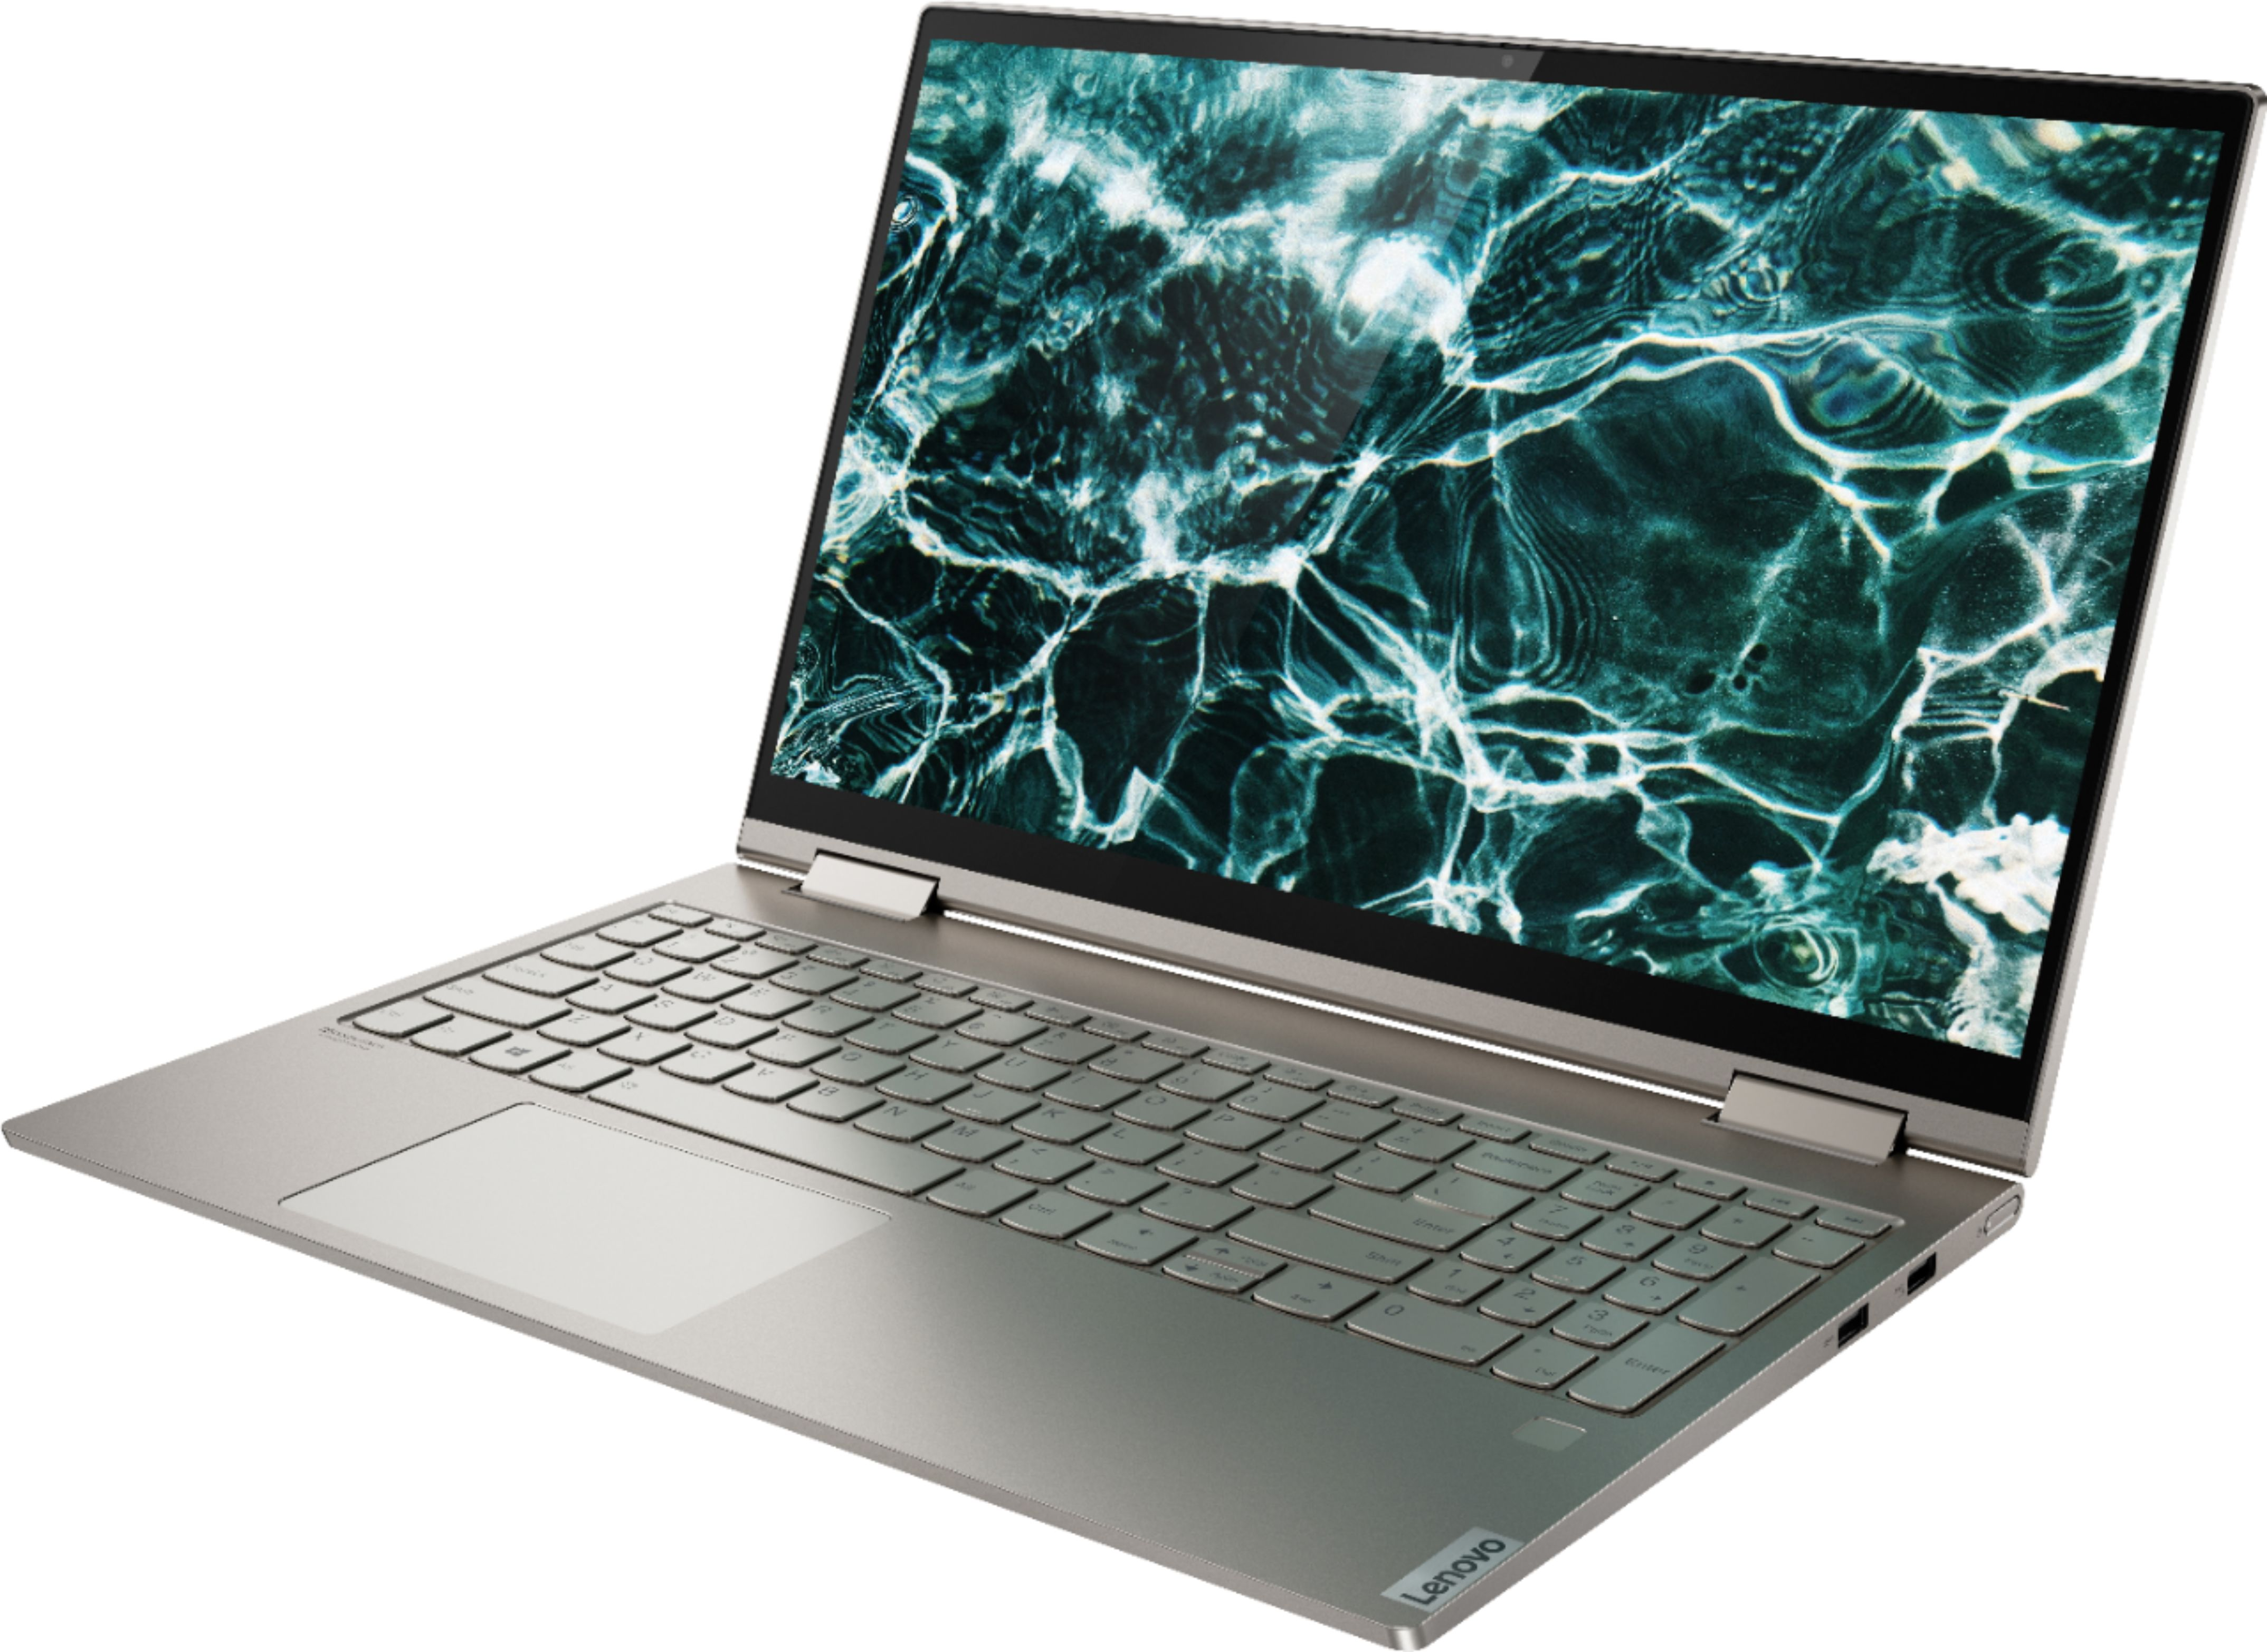 "Left Zoom. Lenovo - Yoga C740 2-in-1 15.6"" Touch-Screen Laptop - Intel Core i7 - 12GB Memory - 512GB Solid State Drive - Mica."